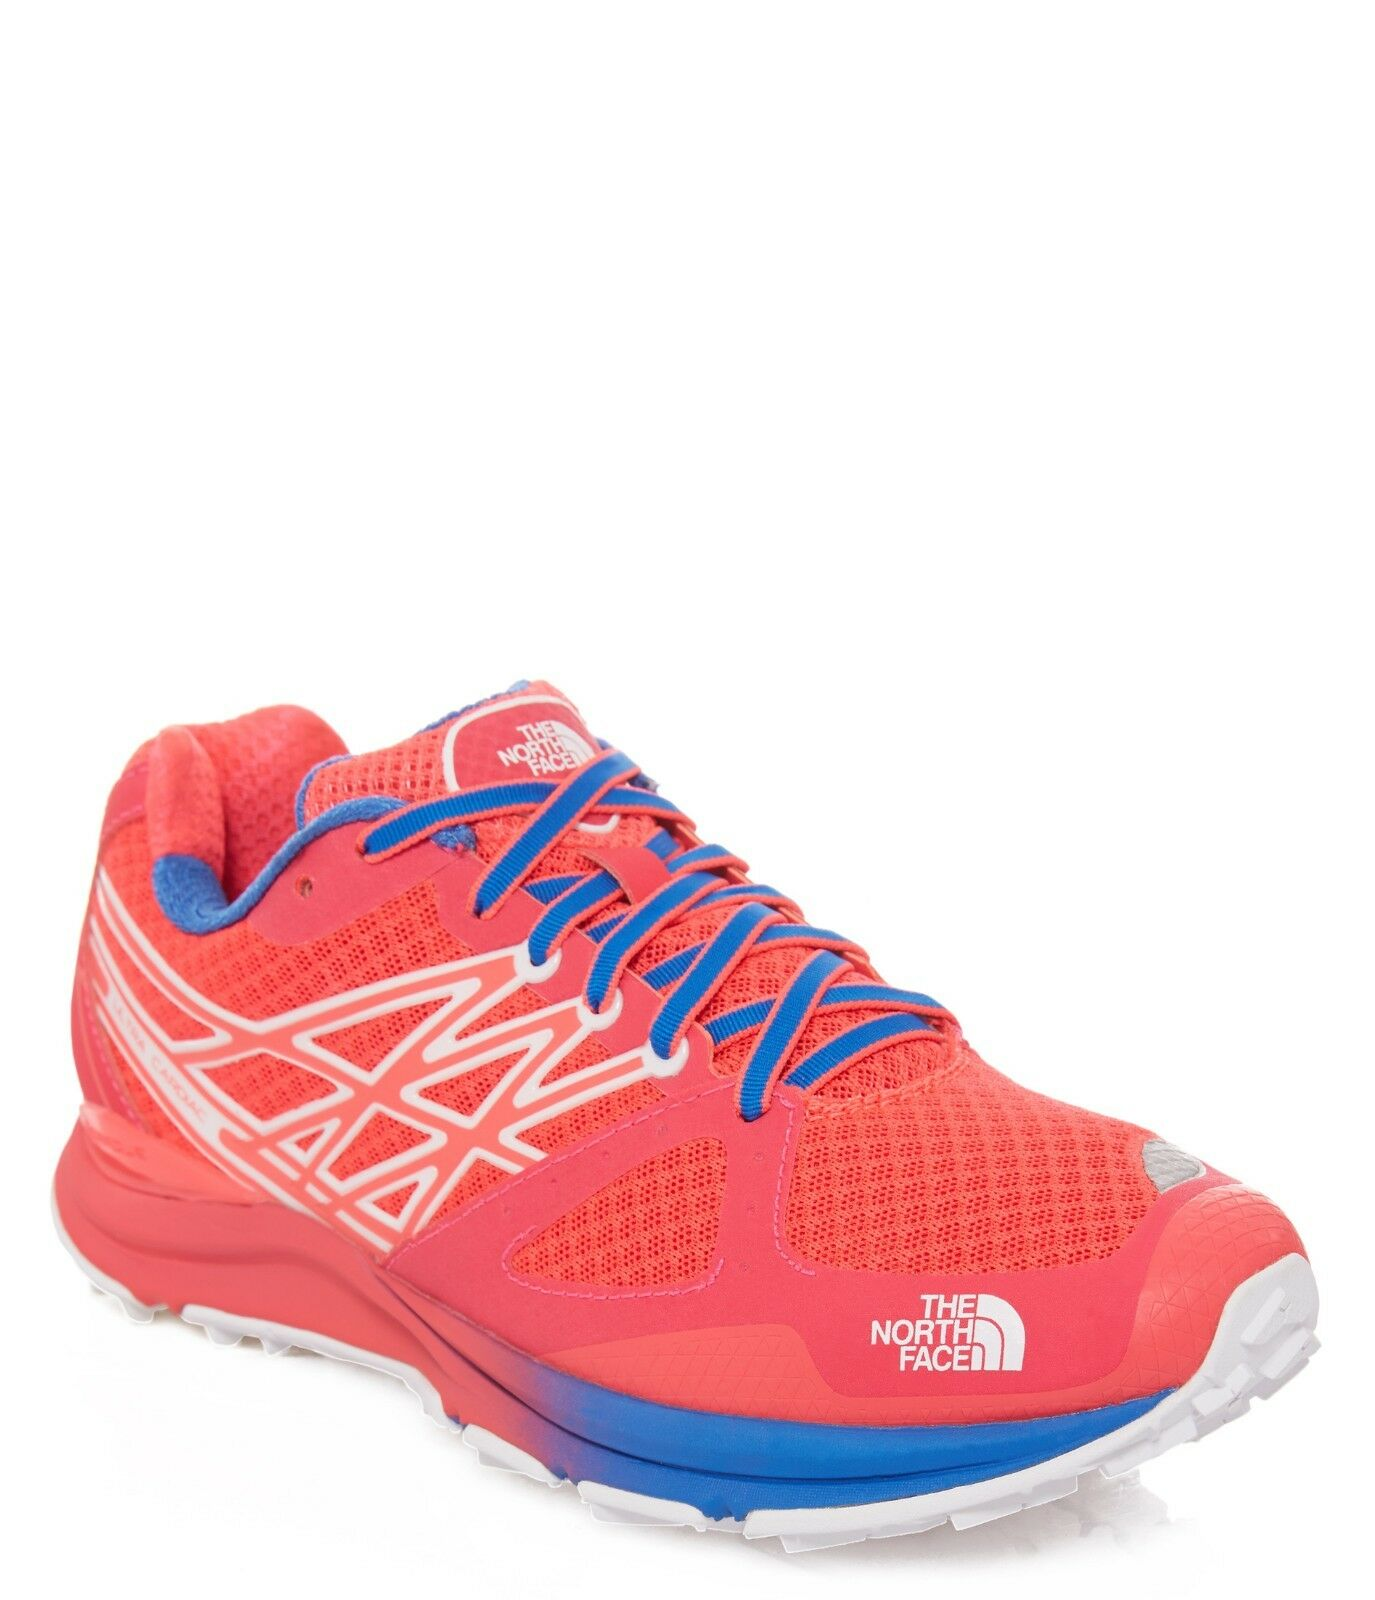 The North Face Women's Ultra Cardiac shoes